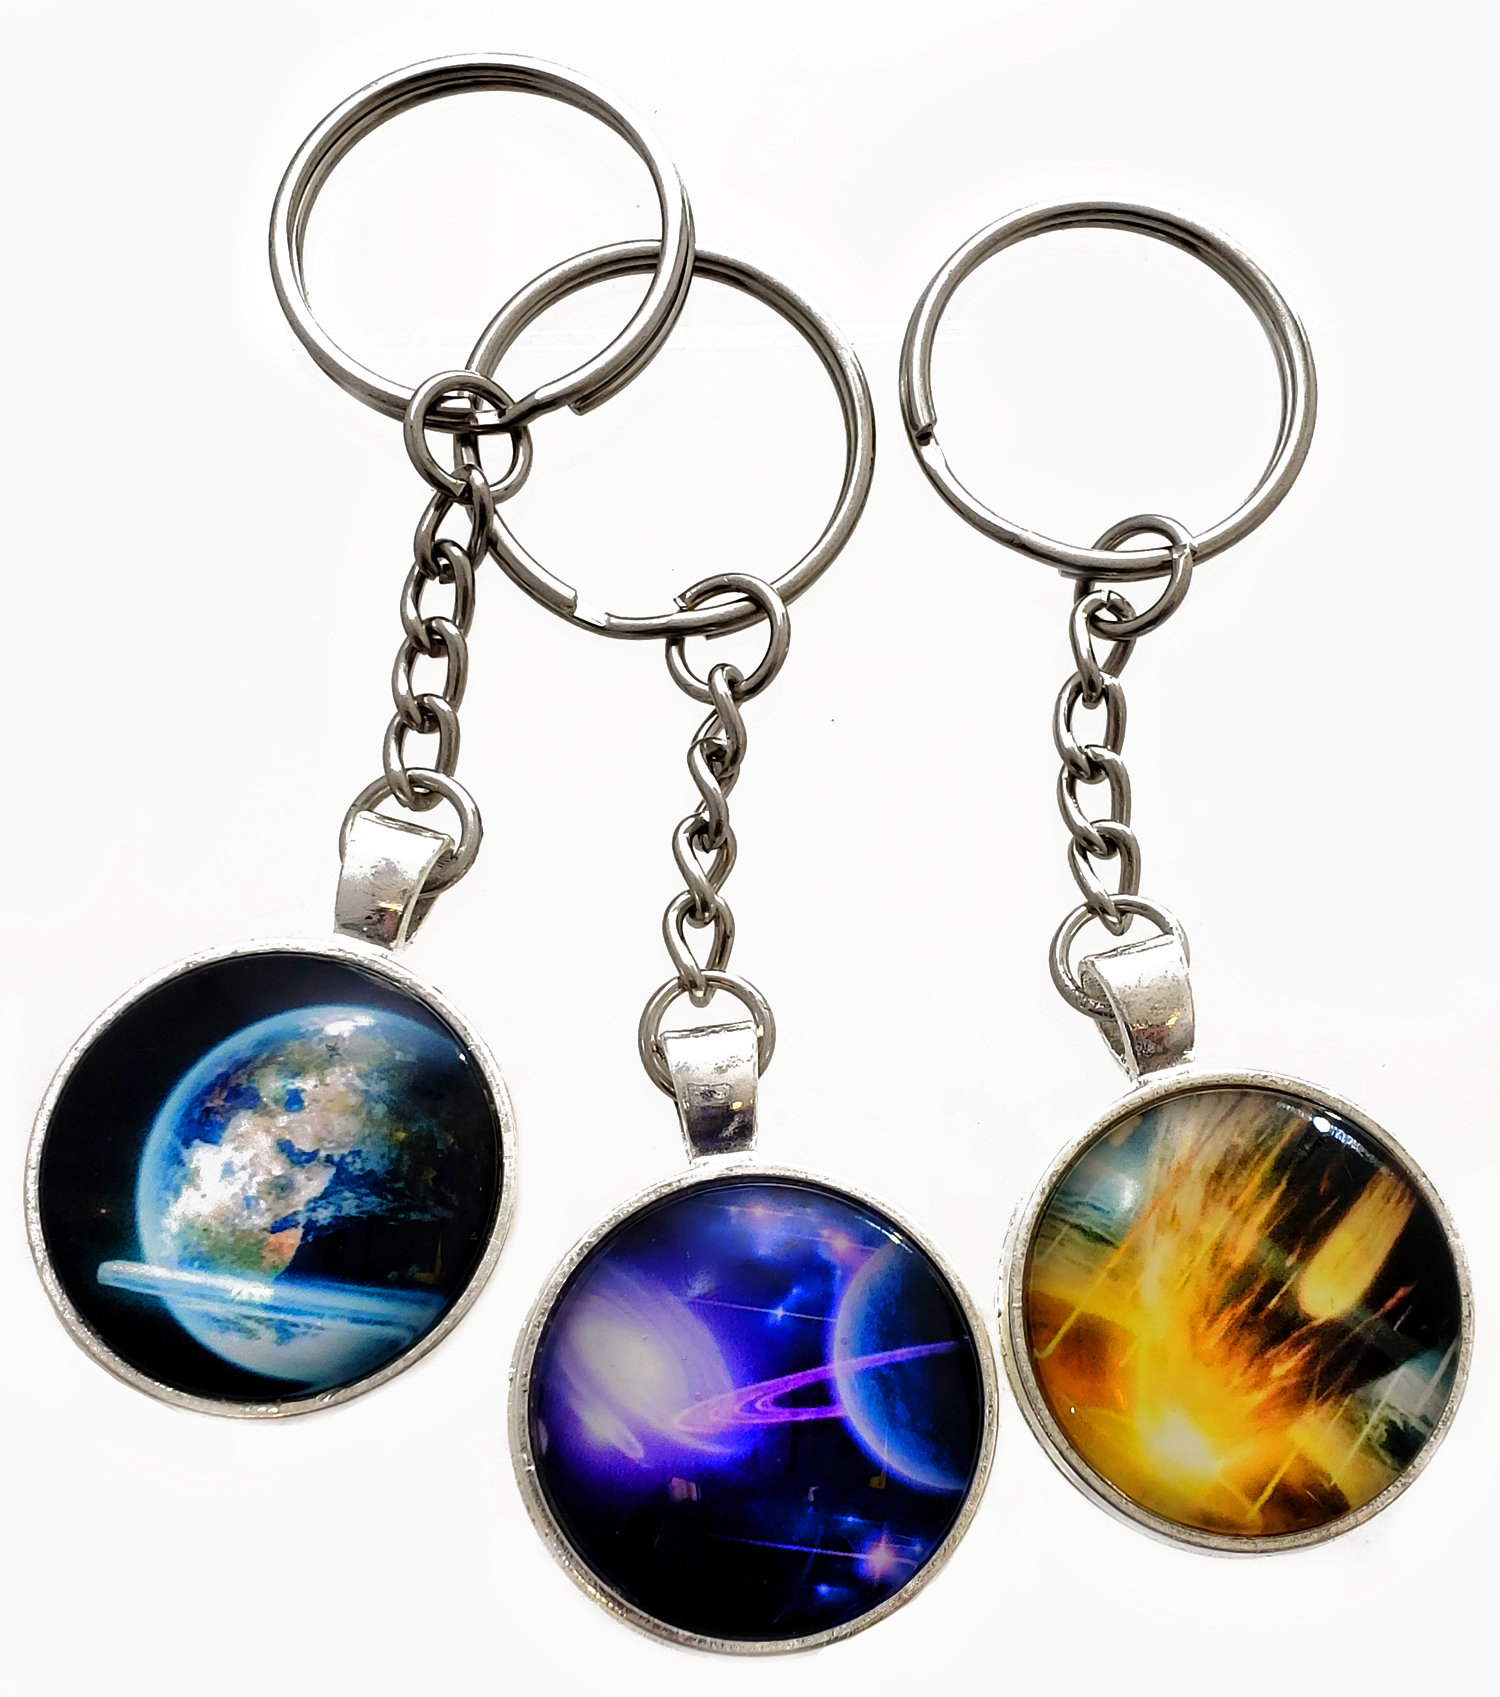 Missing image <20_6549_SpaceKeyRing.jpg> Group: 6549 - SPACE KEY RINGS